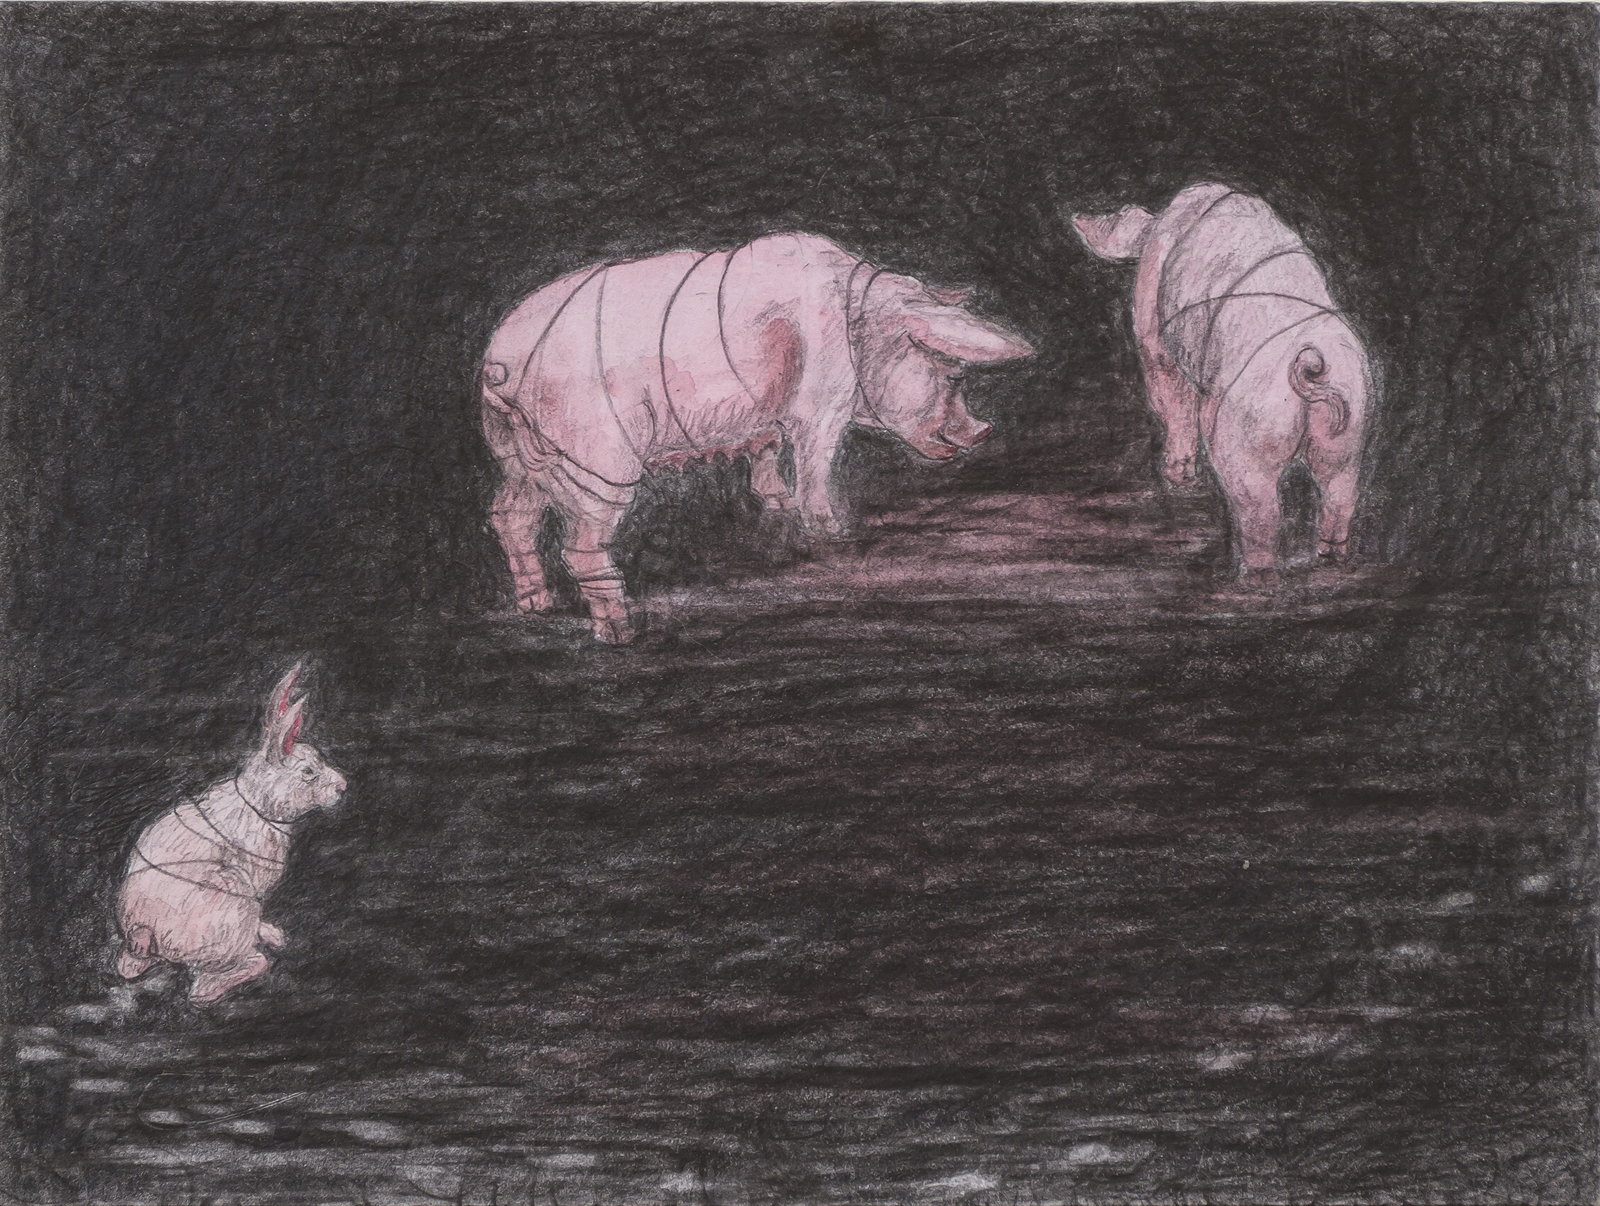 "Pig Pause, 8"" x 10.5"", graphite & watercolor on paper, 2015"